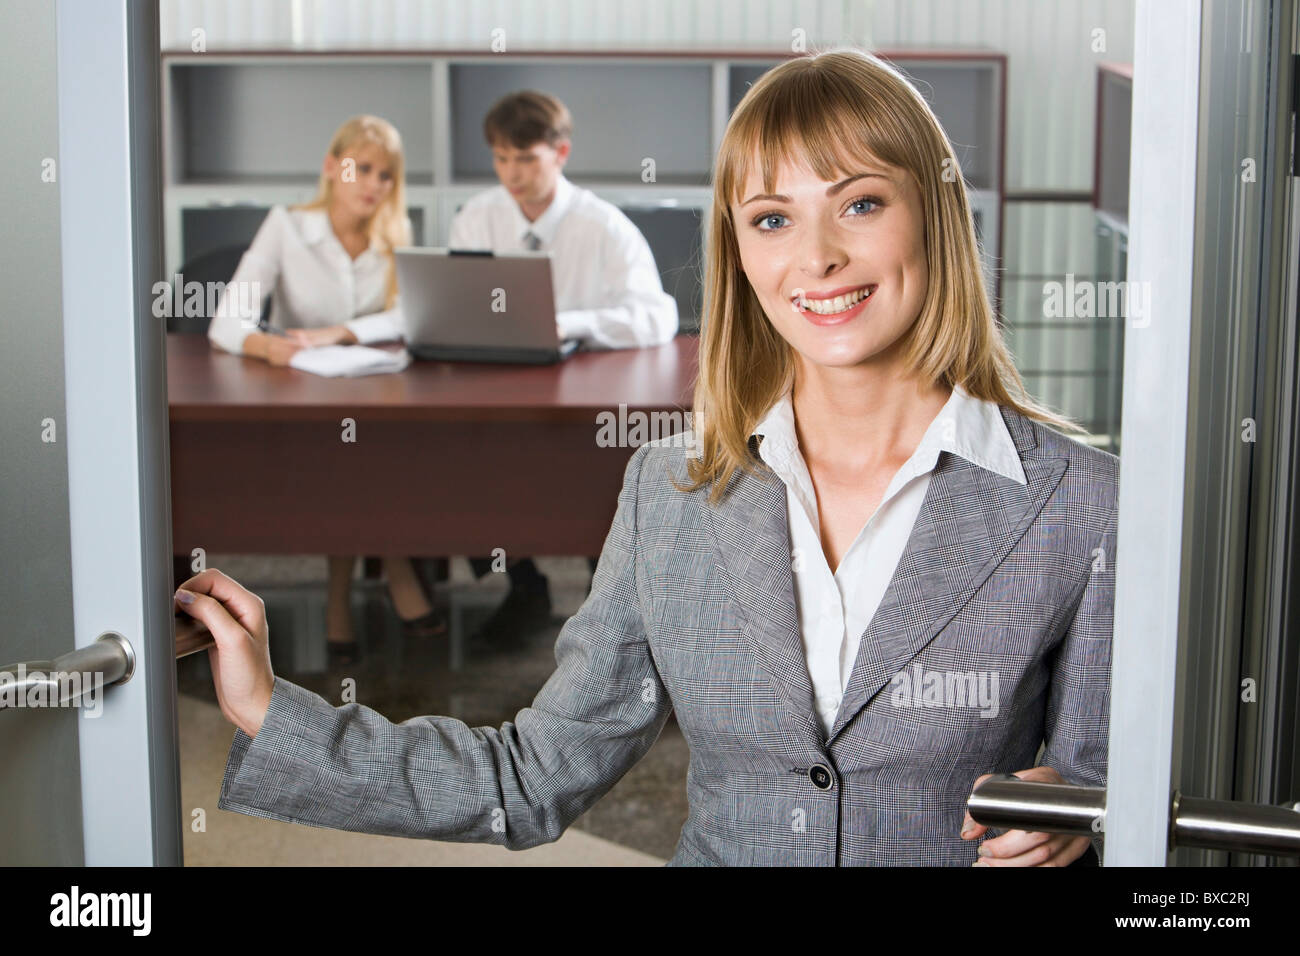 Svelte young woman in gray business suit is touching the doors and two young businesspeople on the background working - Stock Image